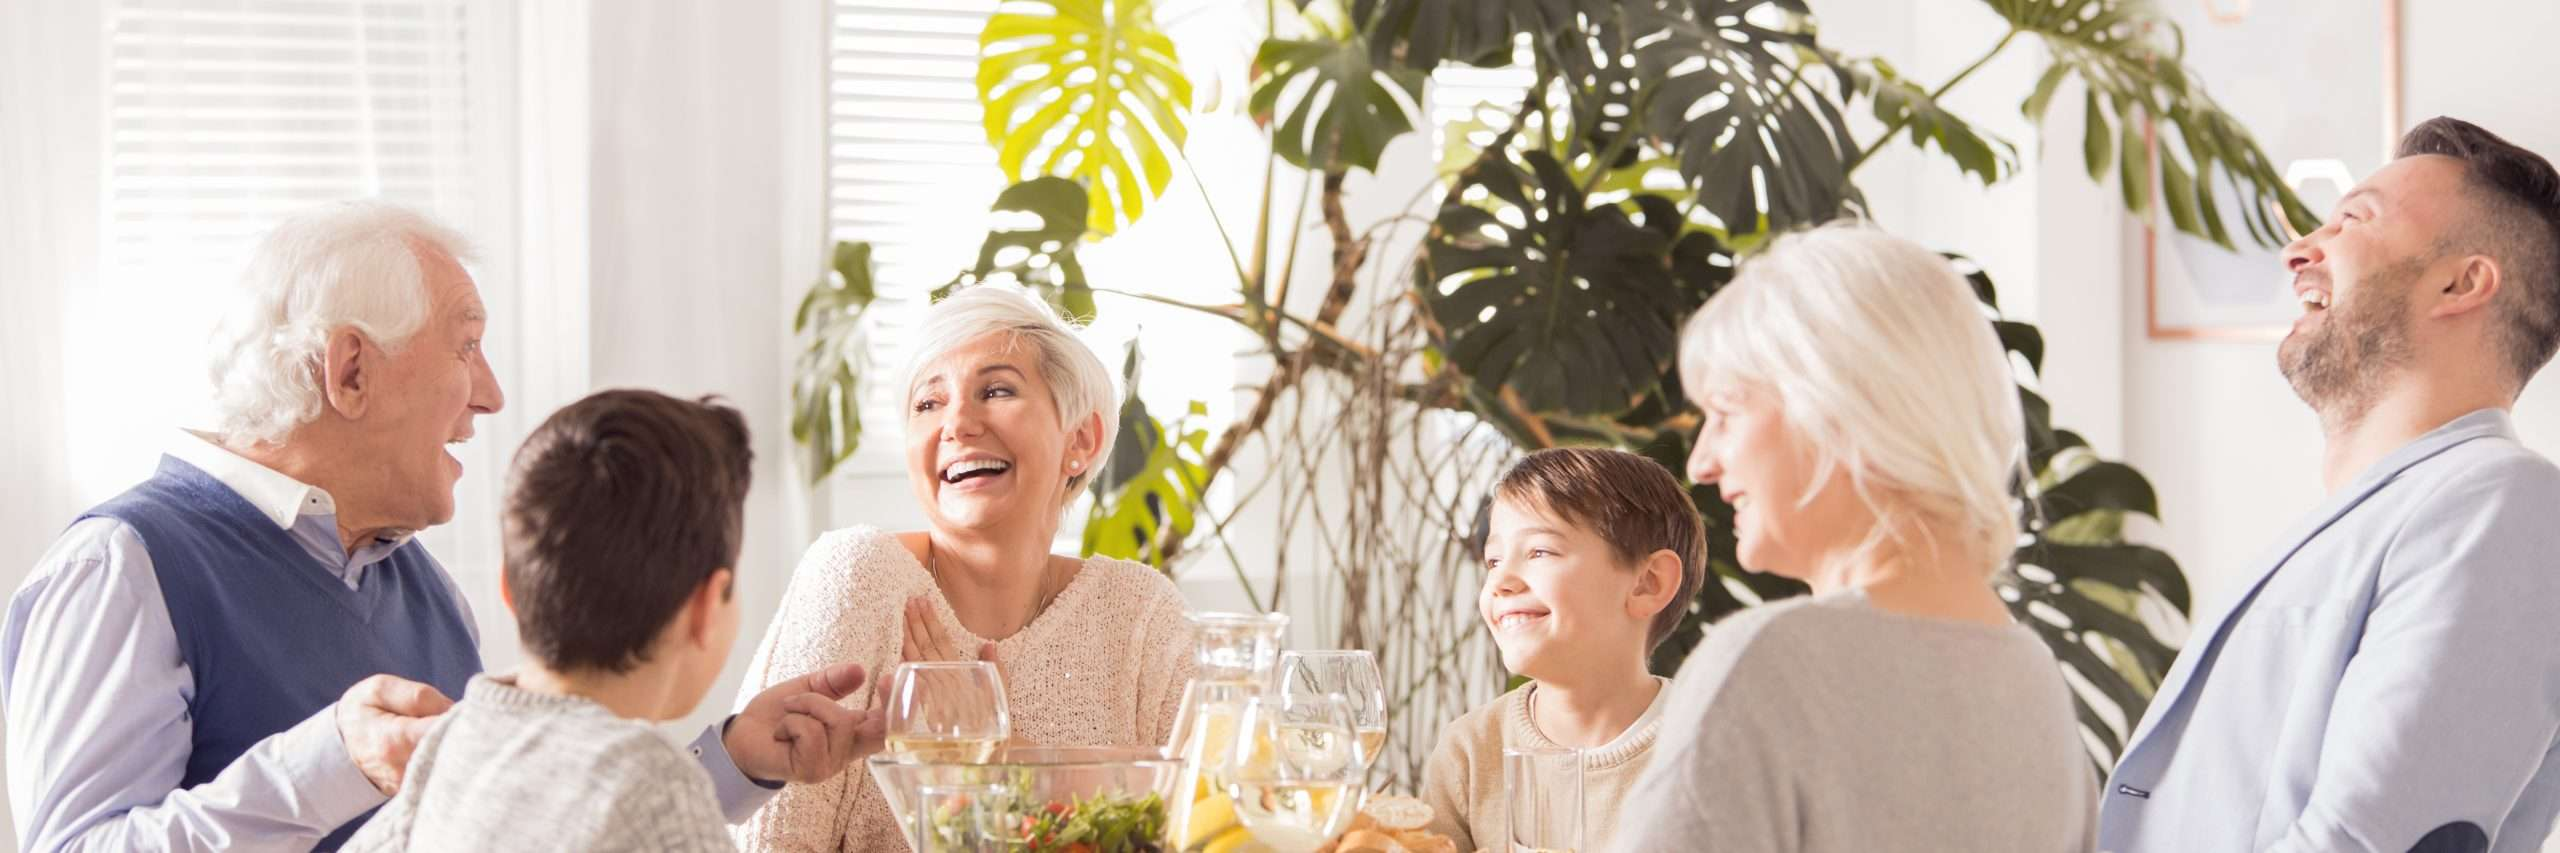 Generational Family enjoying dinner together in home